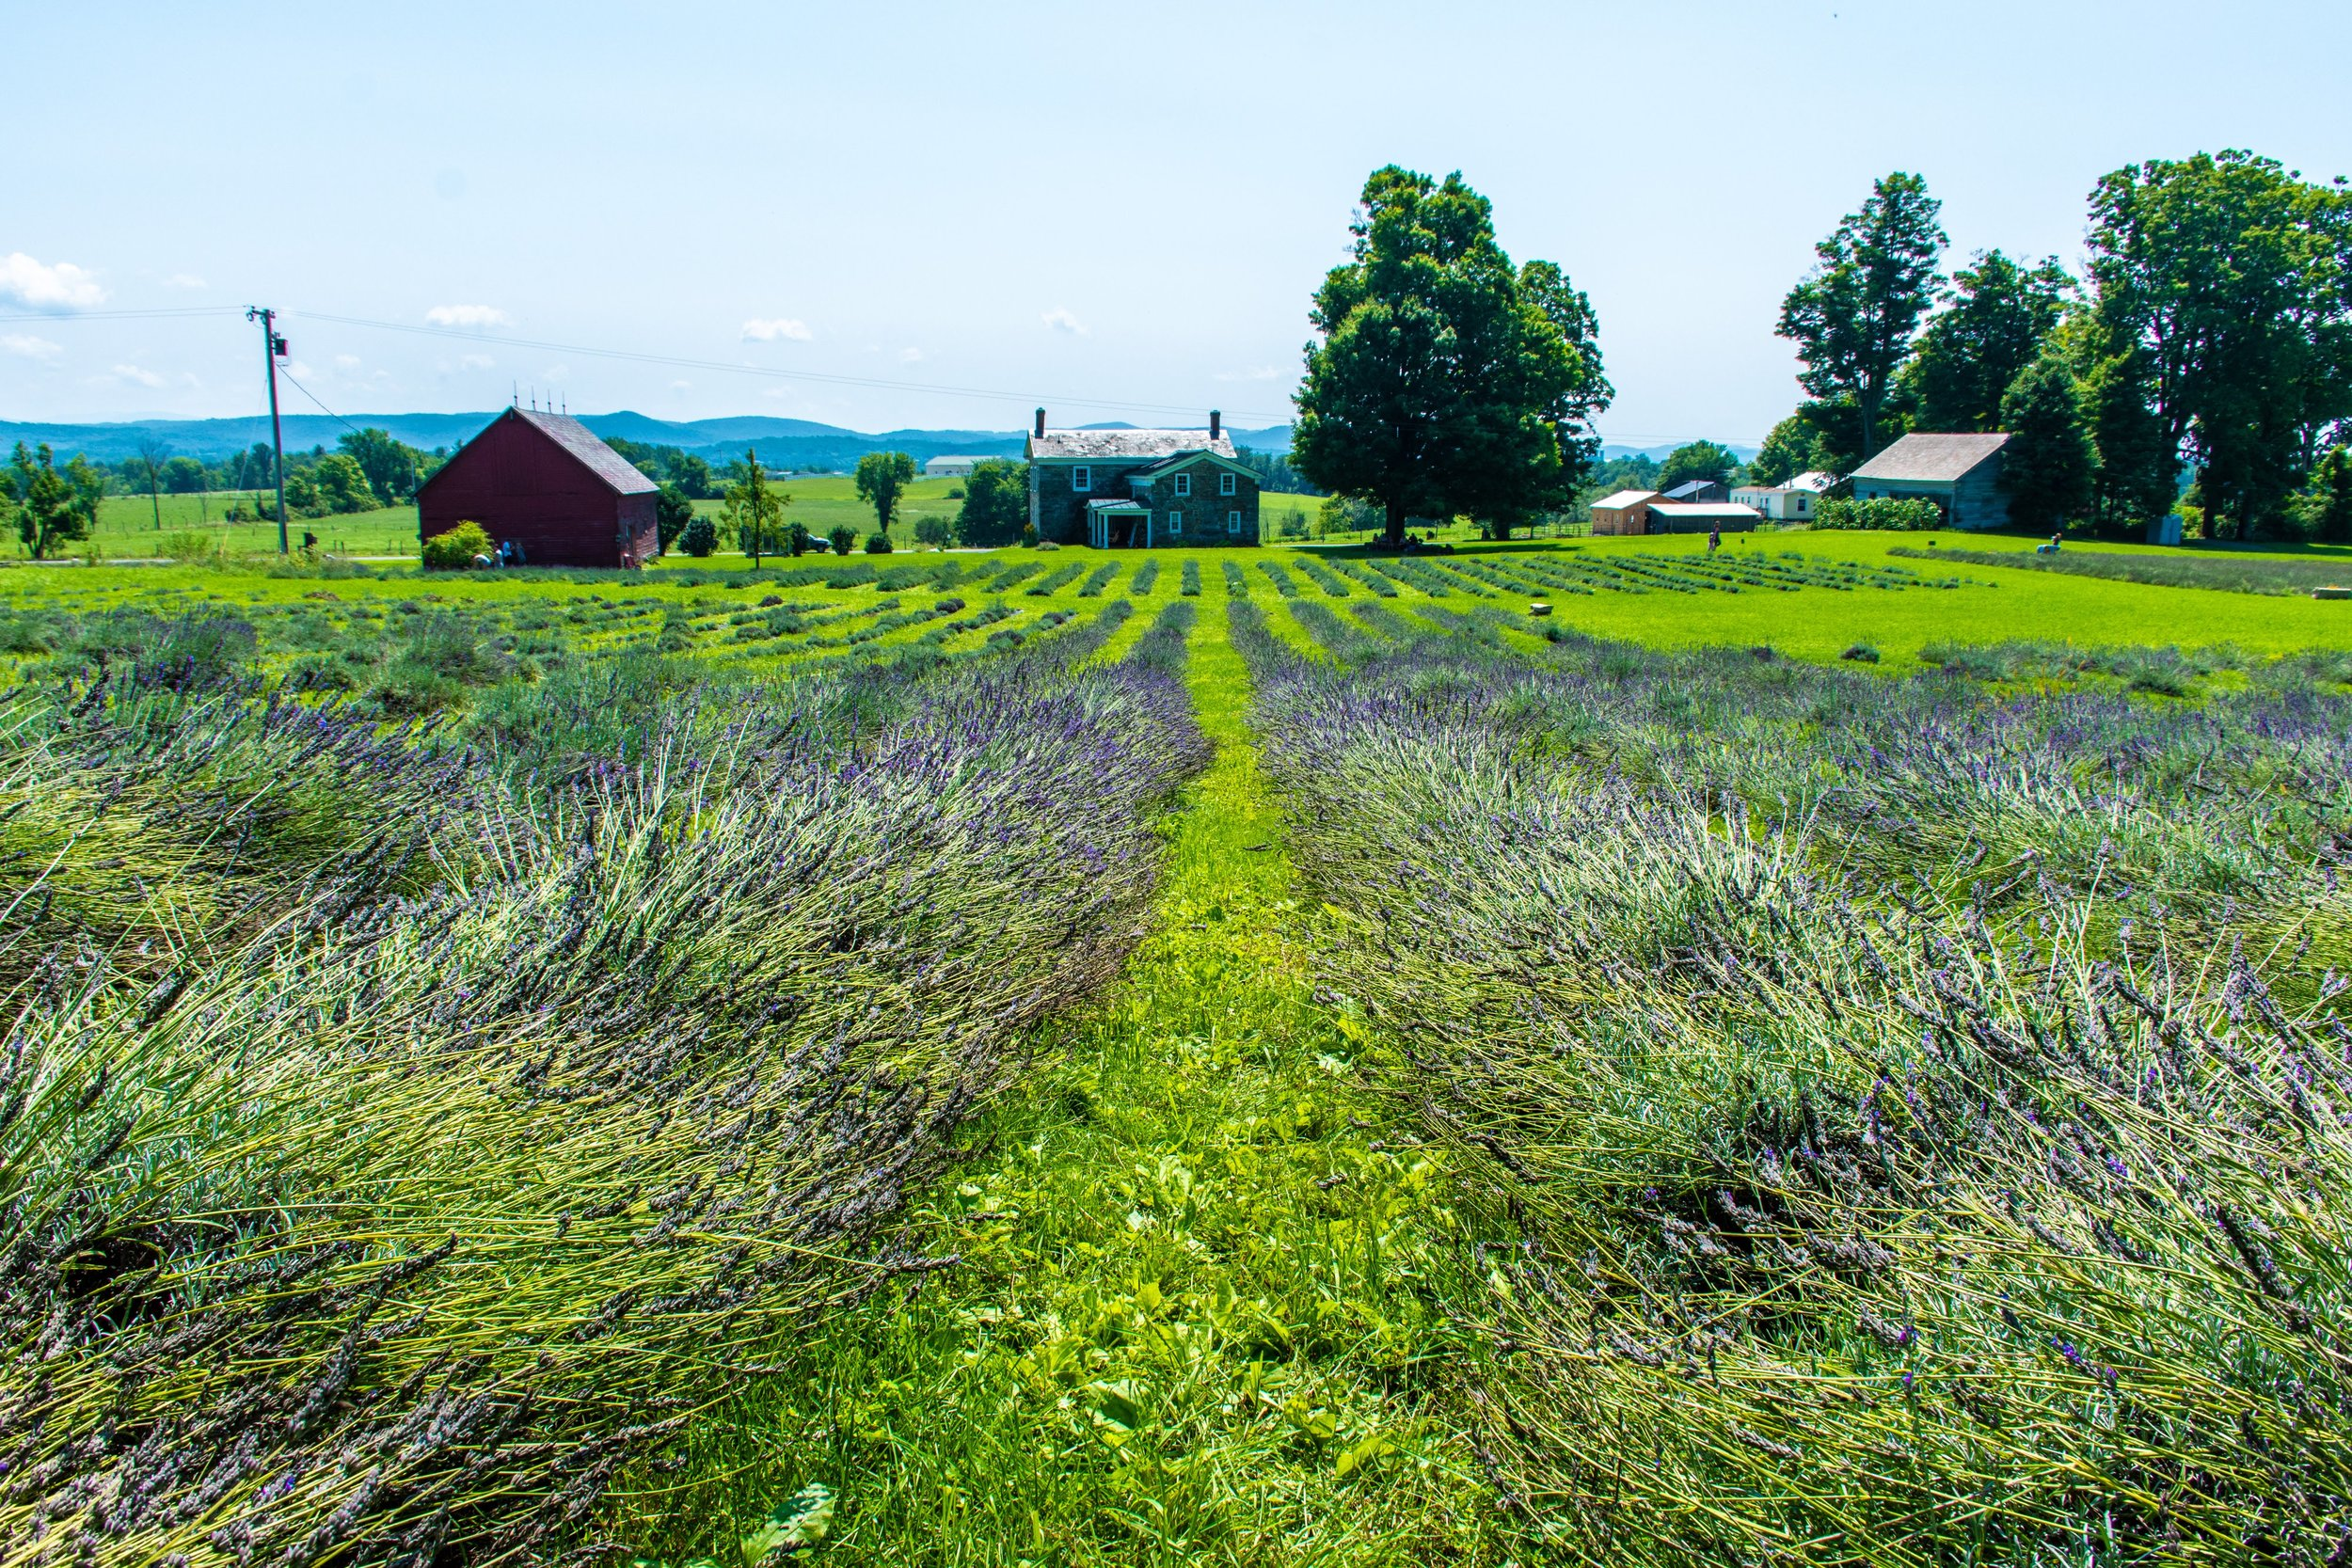 Welcome To Lavenlair Farm - We grow thousands of lavender plants for fragrant and culinary use on our organic farm located near Lake George in beautiful upstate New York.The farm is now closed for the 2019 U-Pick Season.  Be sure to add December 6th, 7th & 8th to your calendar to attend our 2019 Holiday Open House, where you can tour the main level of our 200 year old stone farmhouse all decorated in a lavender Christmas theme,  sample some lavender hot cocoa and shop for the holidays!Please be sure to visit our events page or follow us on Facebook for workshops, classes and other events here at the farm.  We so appreciate your continued love and support of our farm! -- David & Diane